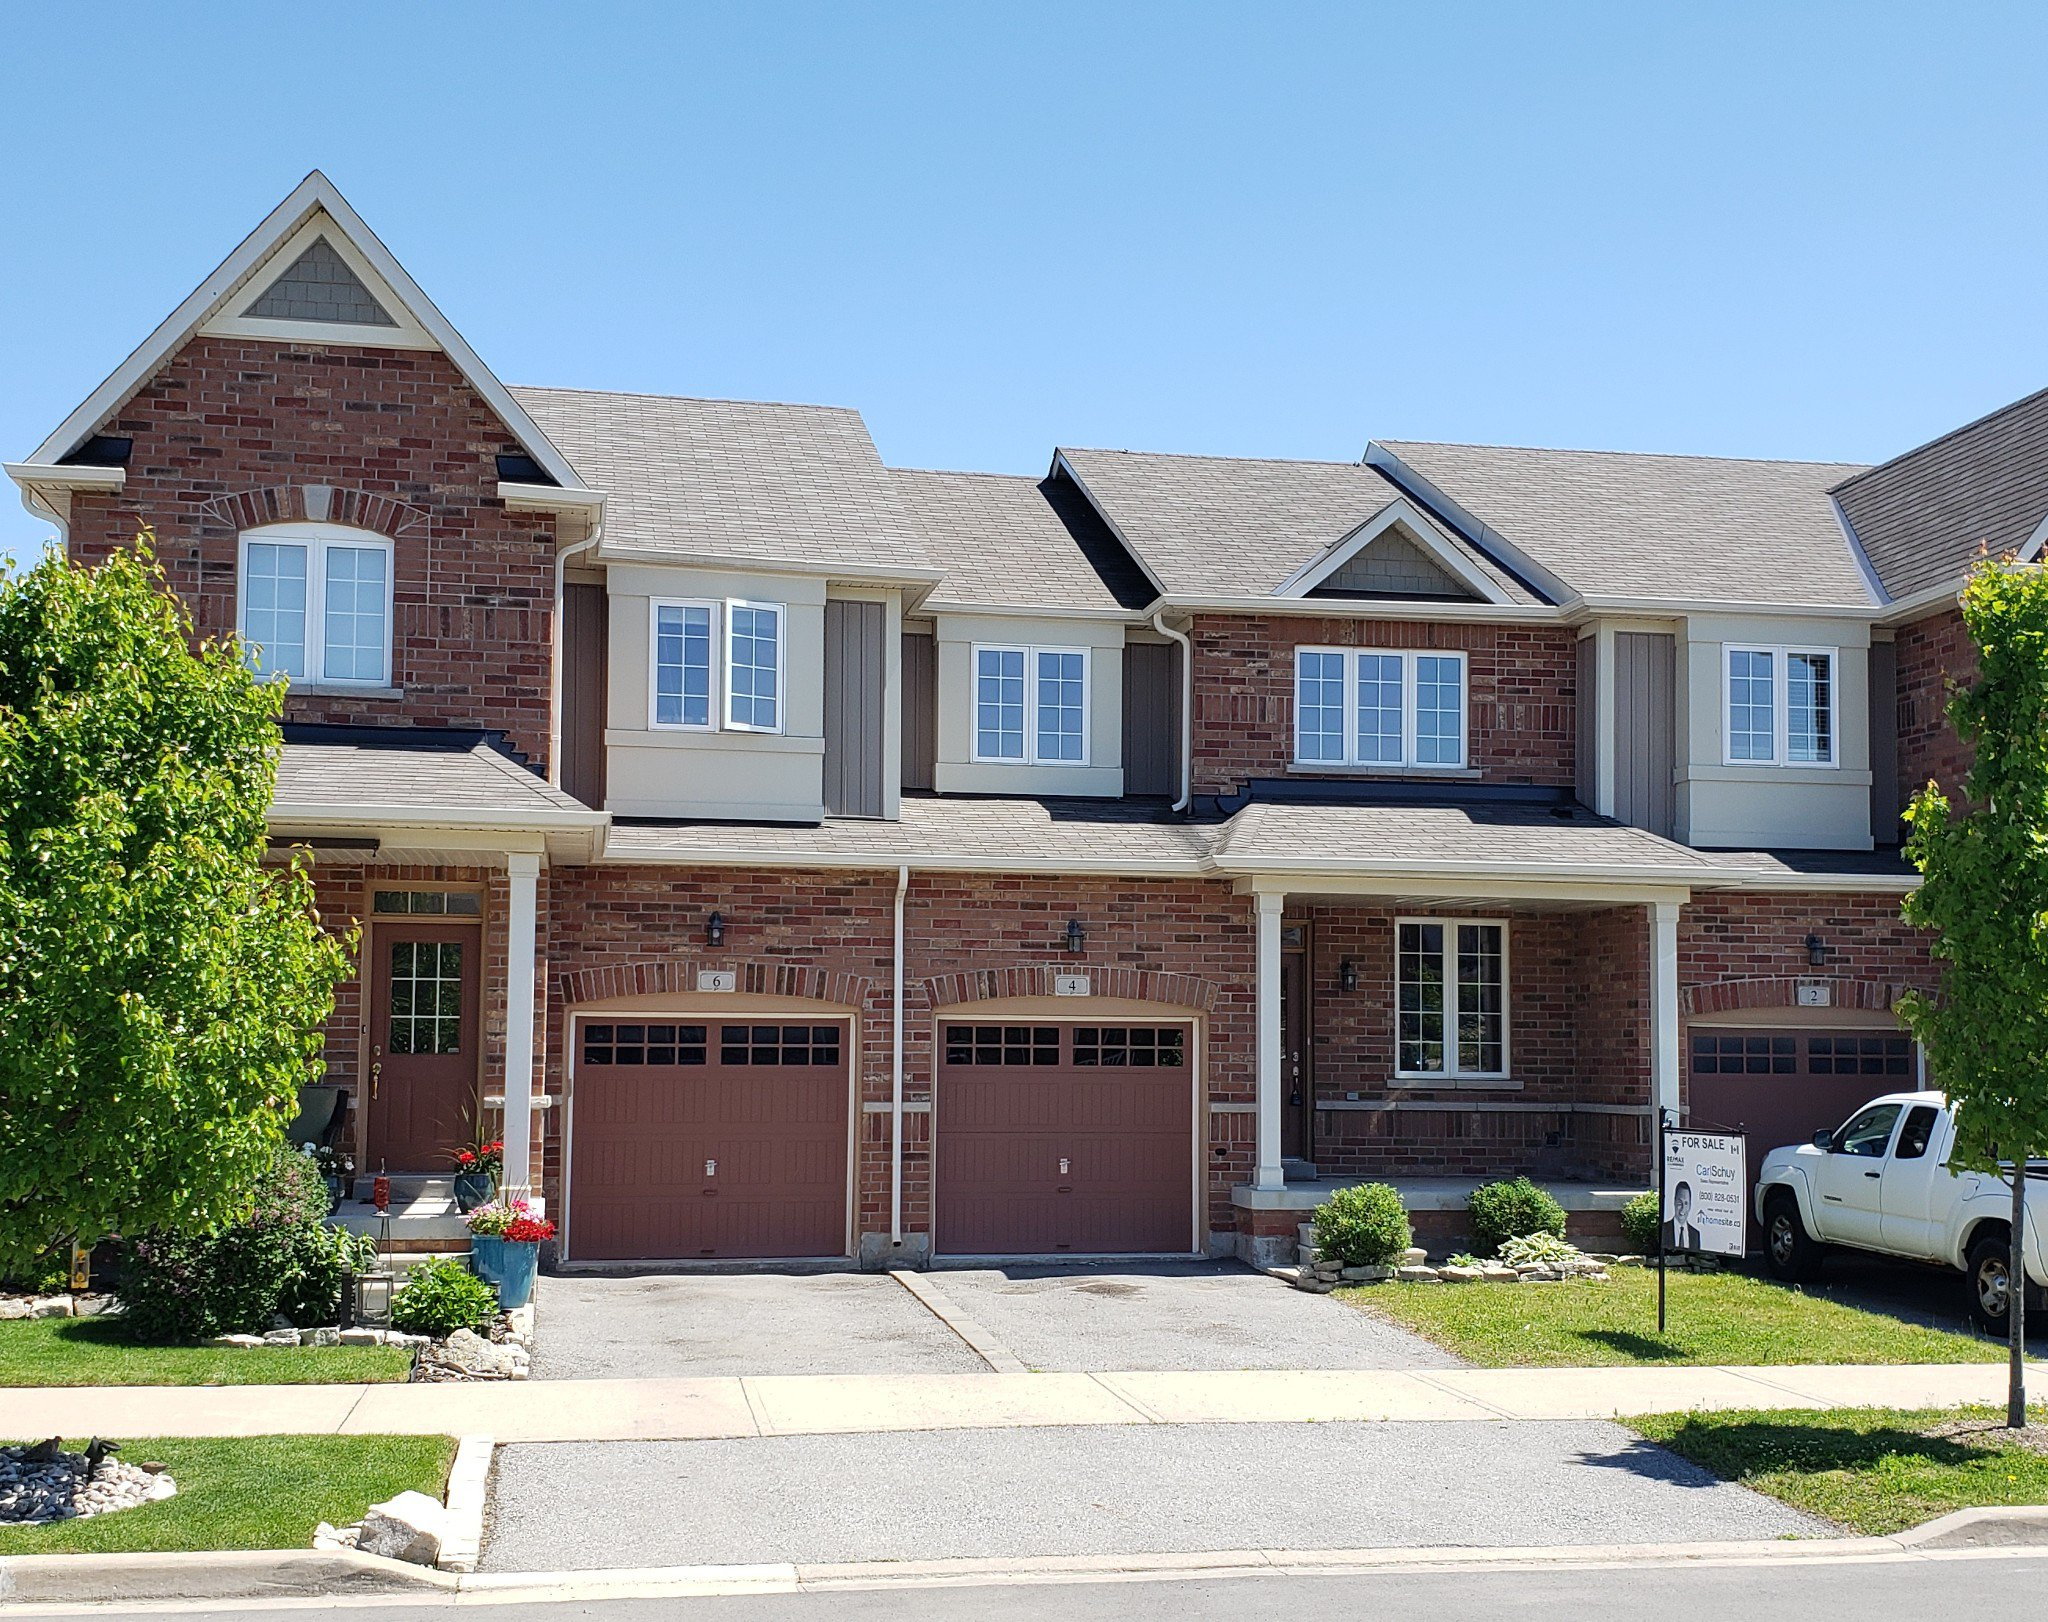 Main Photo: 4 Gunby Blvd: Waterdown Freehold for sale (Hamilton)  : MLS®# X4489120